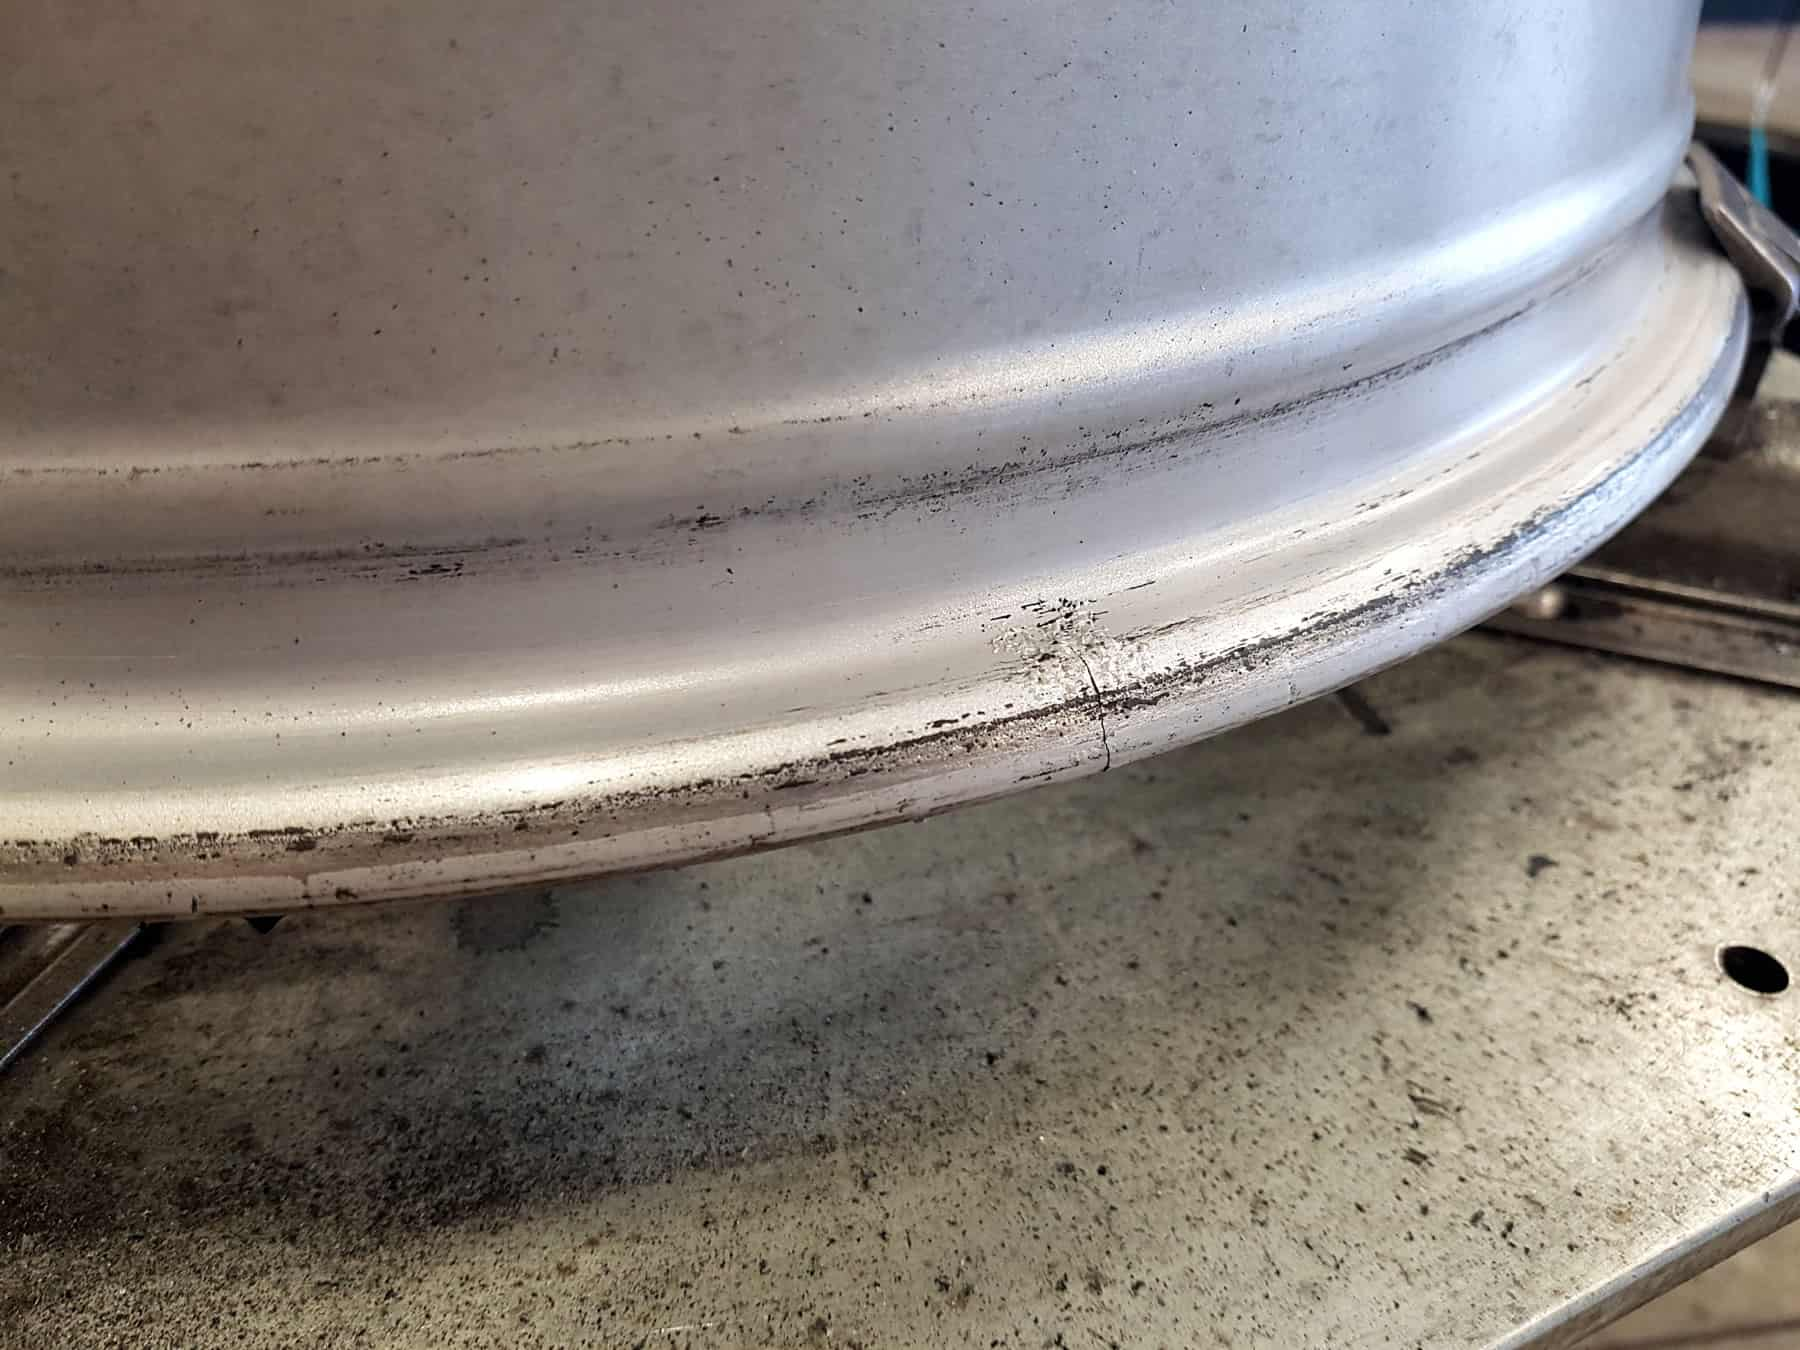 Cracked Alloy Wheel